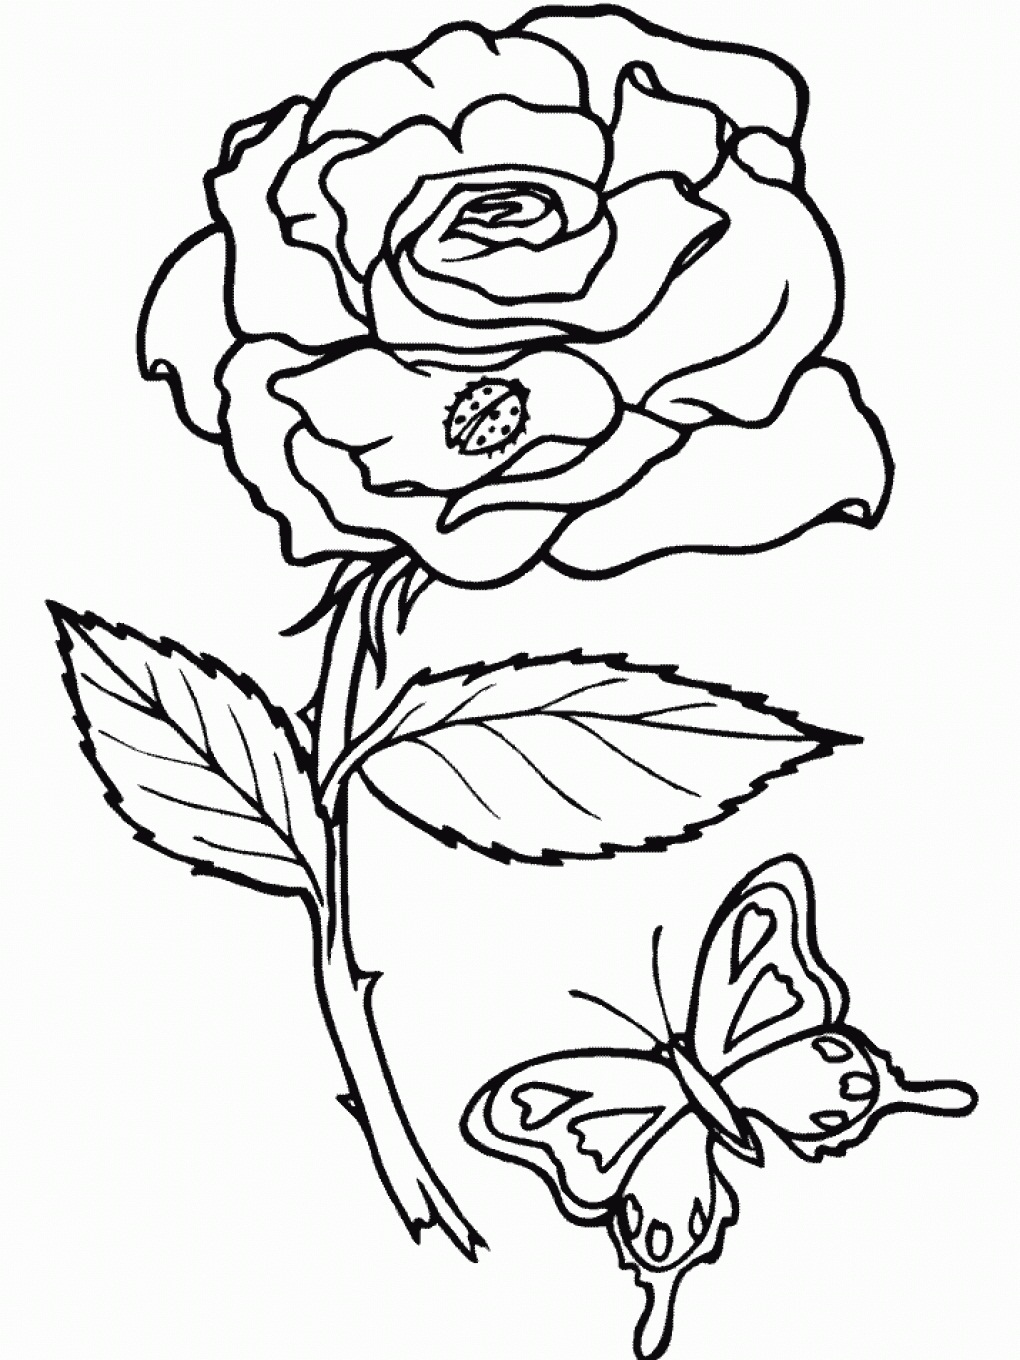 Free printable roses coloring pages for kids - Coloriage rose ...